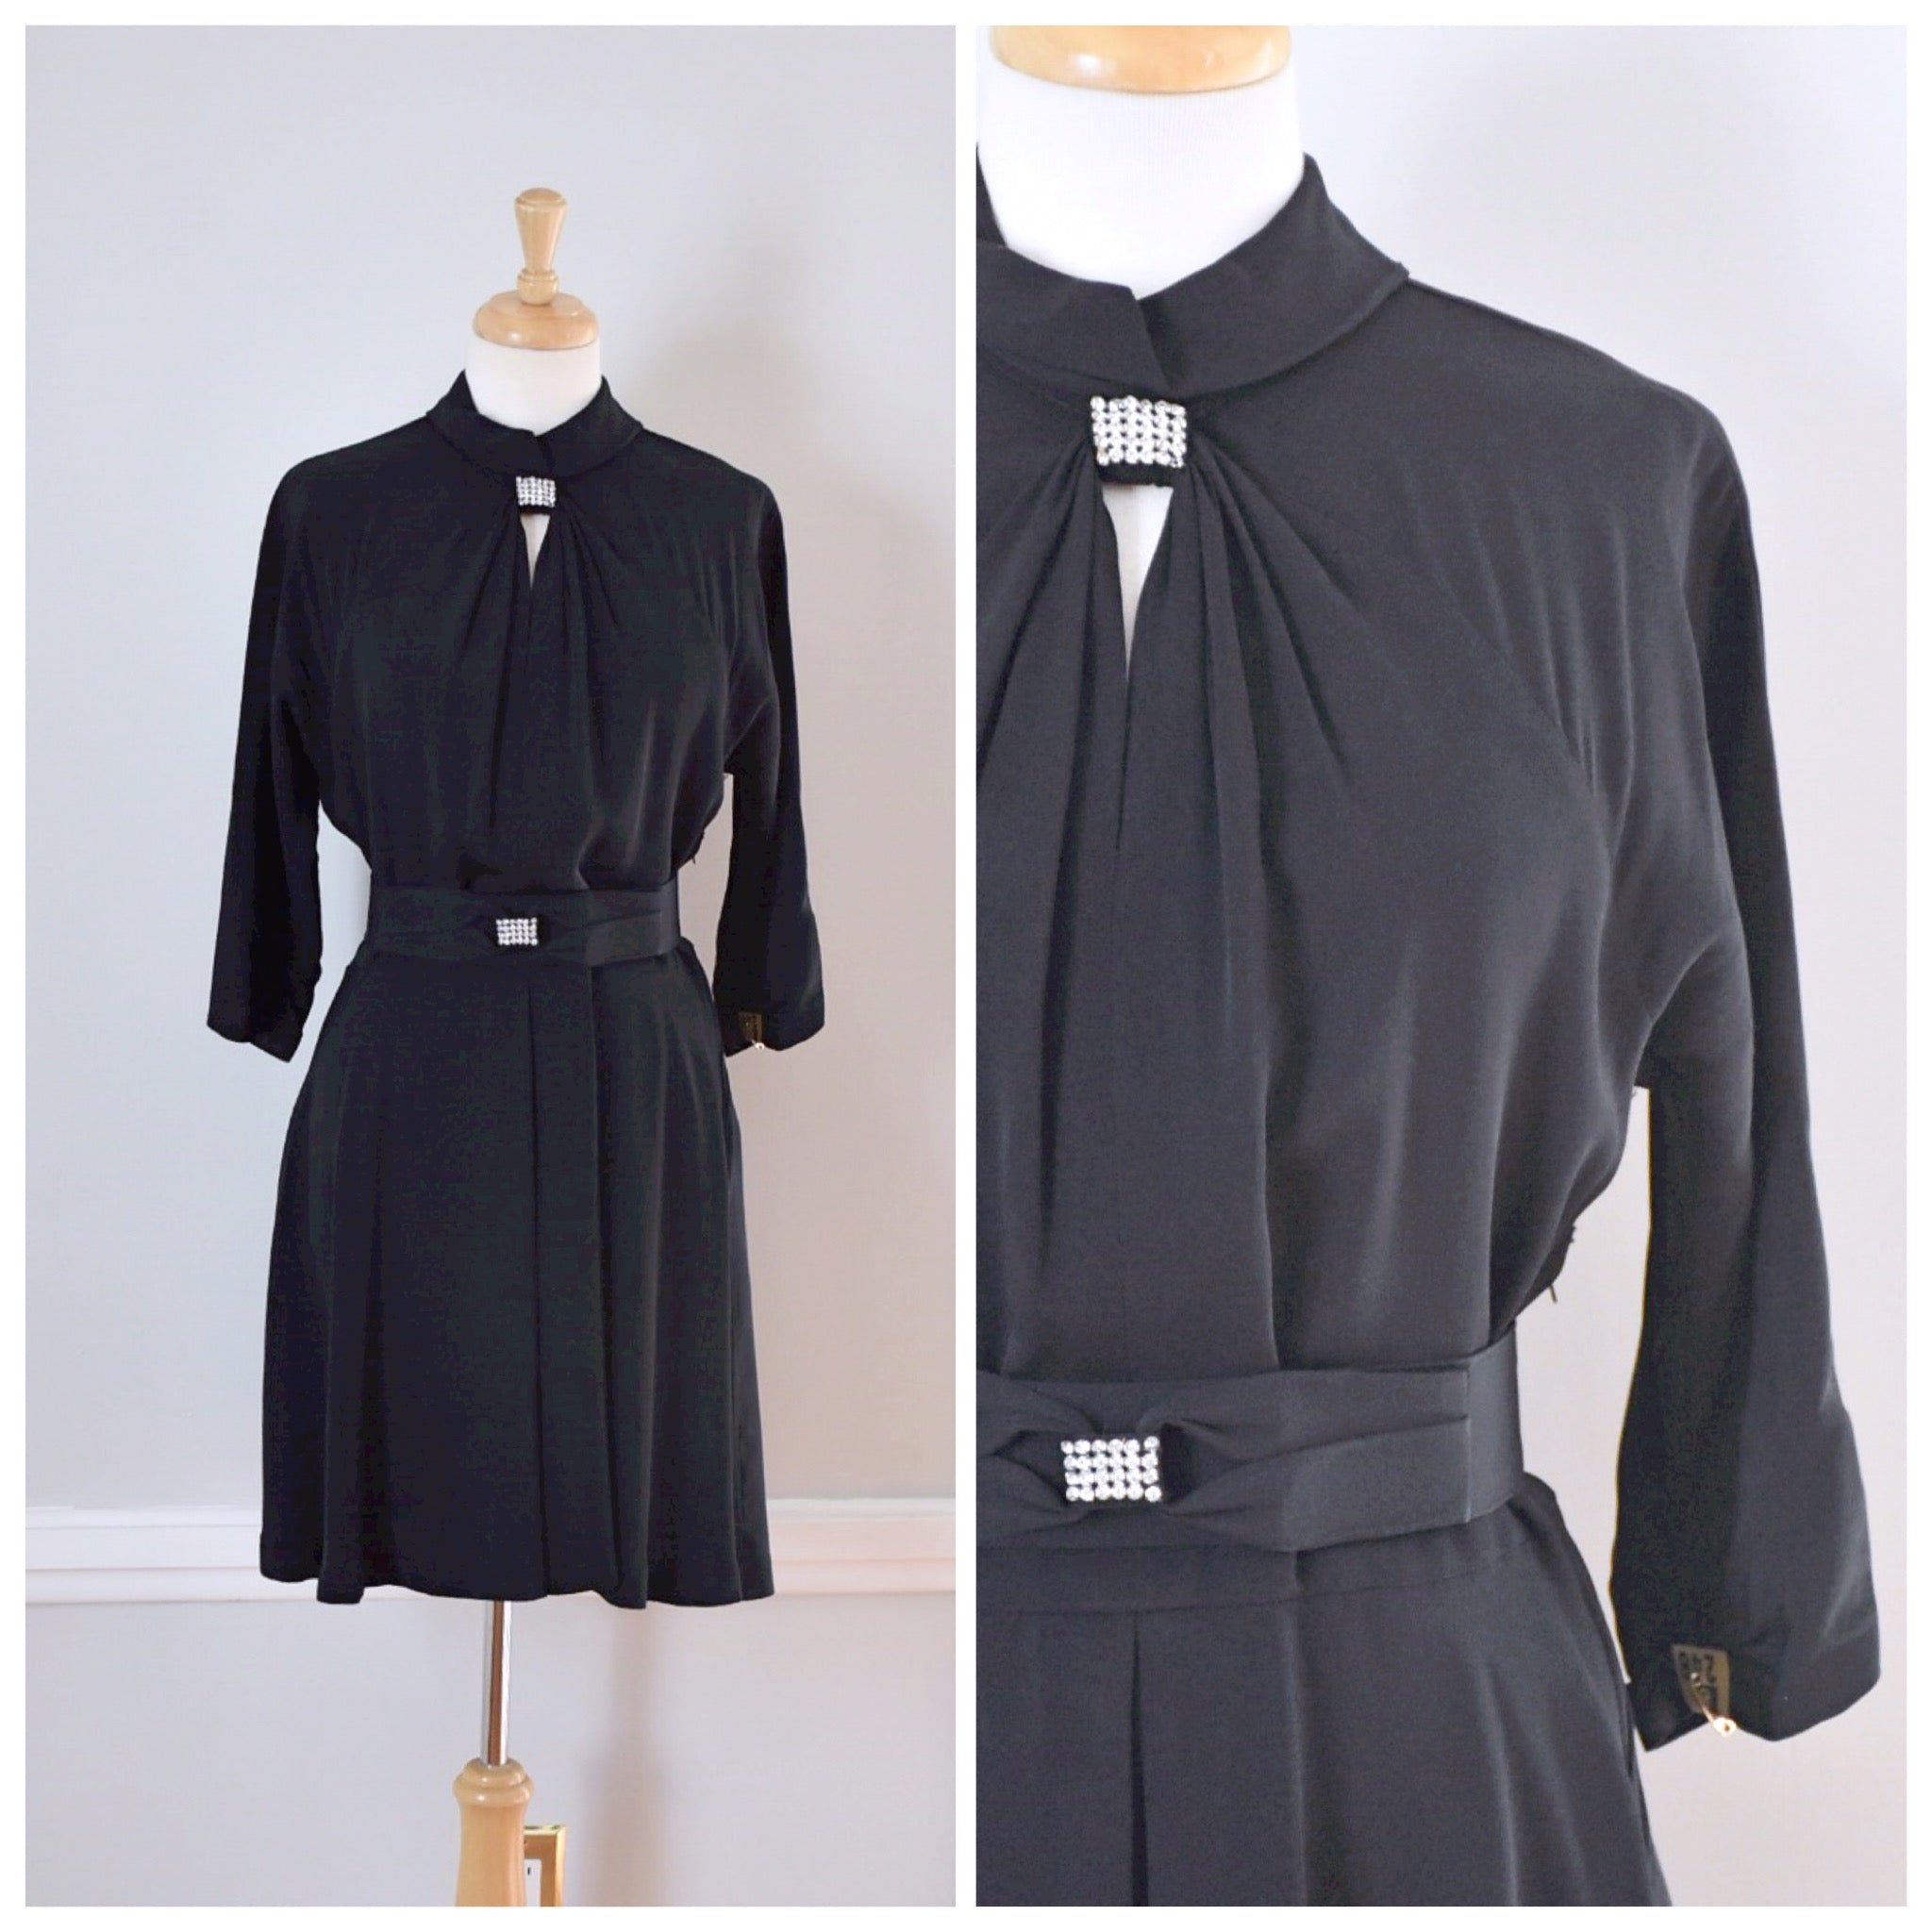 40s Vintage Black Rayon Dress